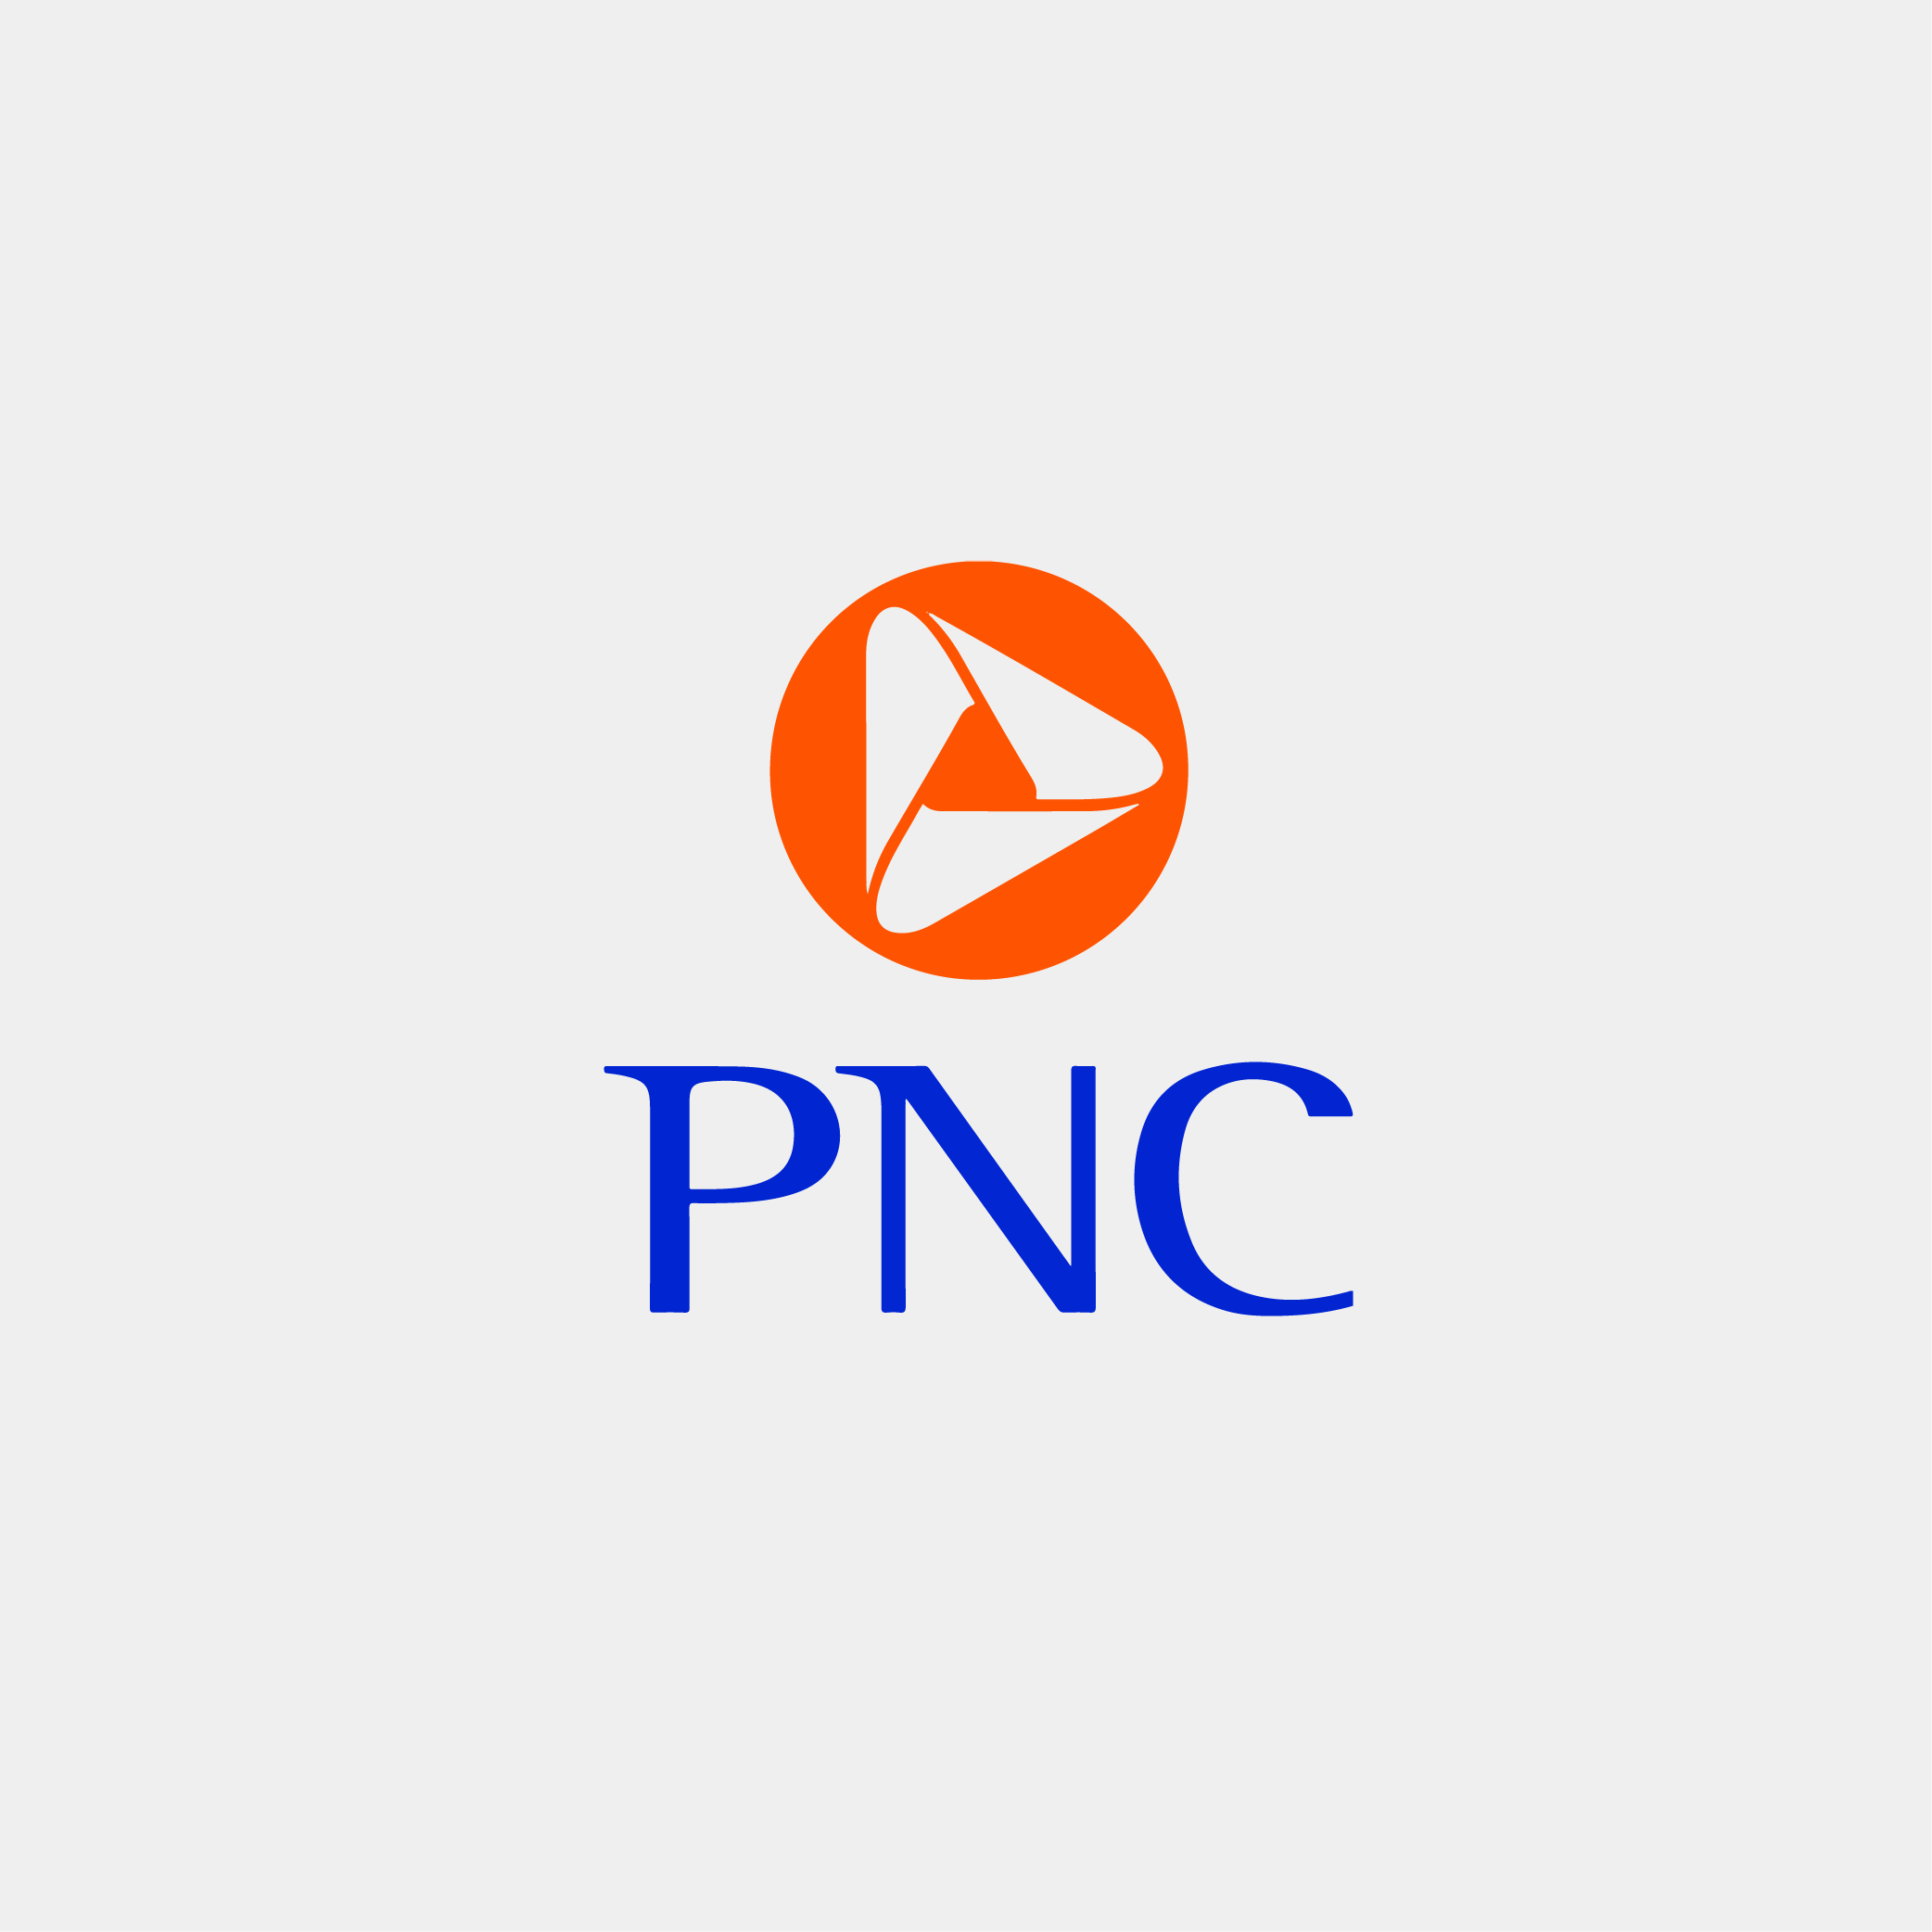 Digital Experience Design Intern at PNC Bank